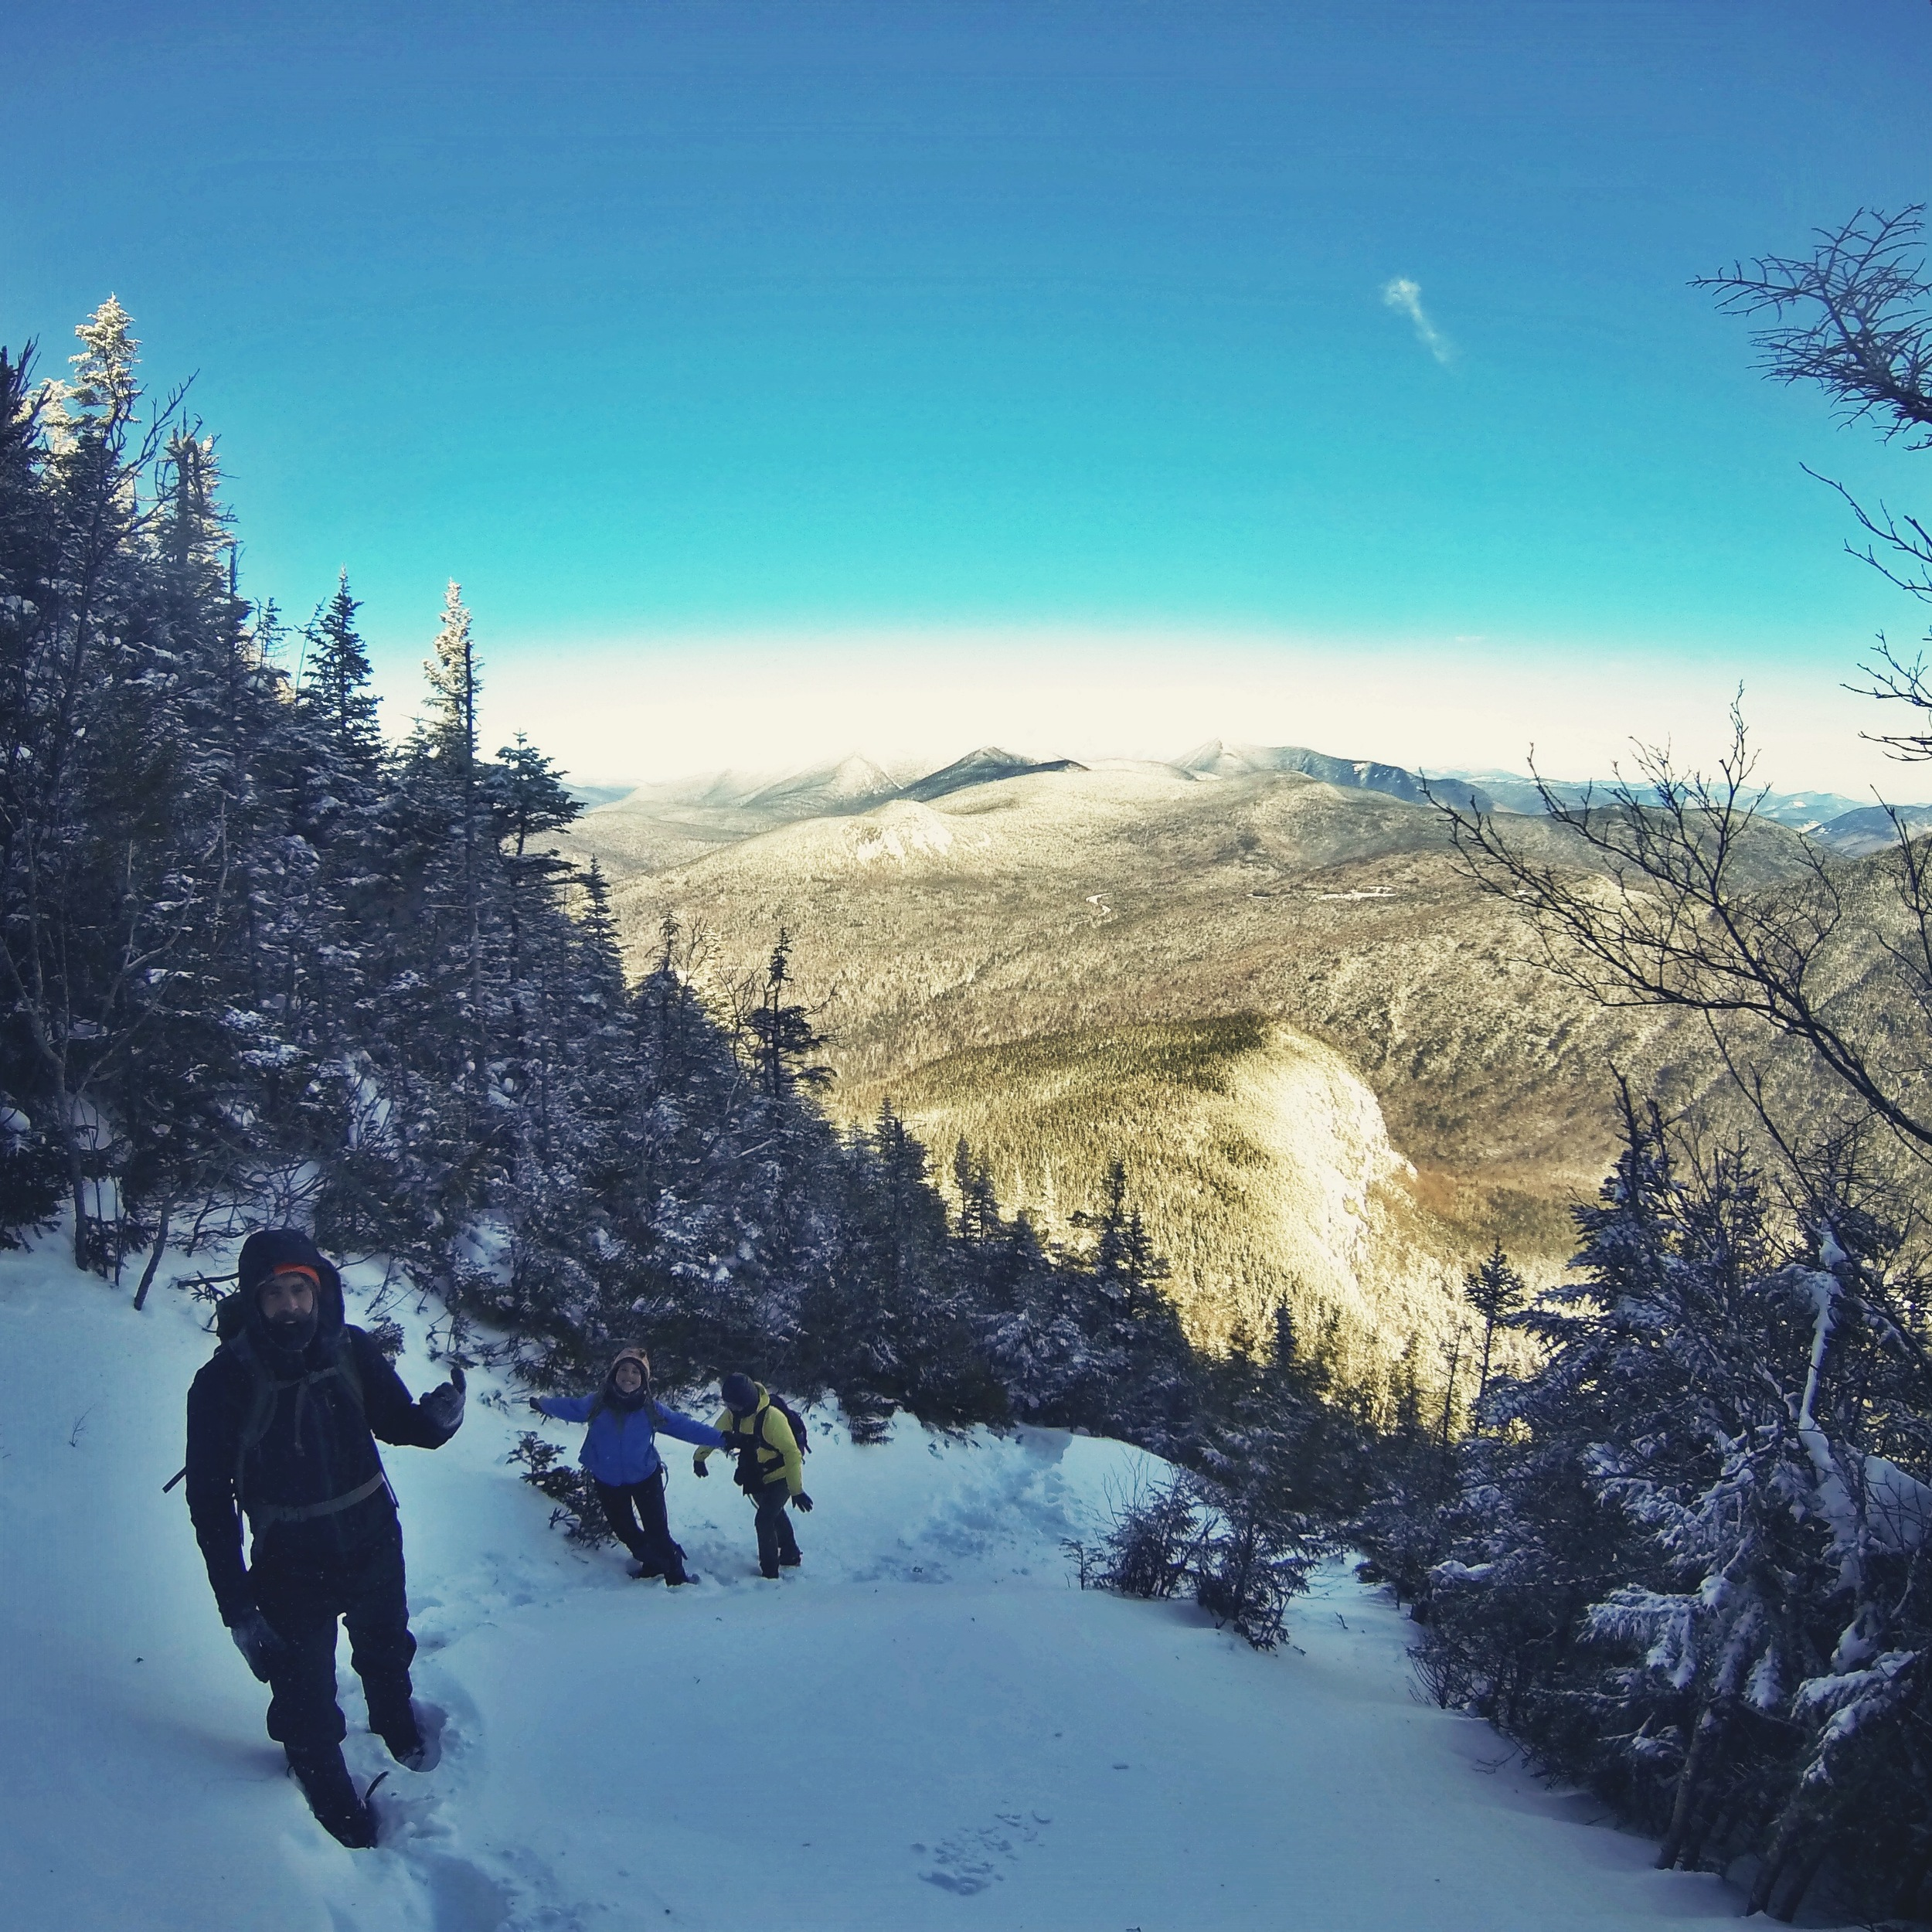 The gang heads up the exposed slope, views of the Sandwich Range.